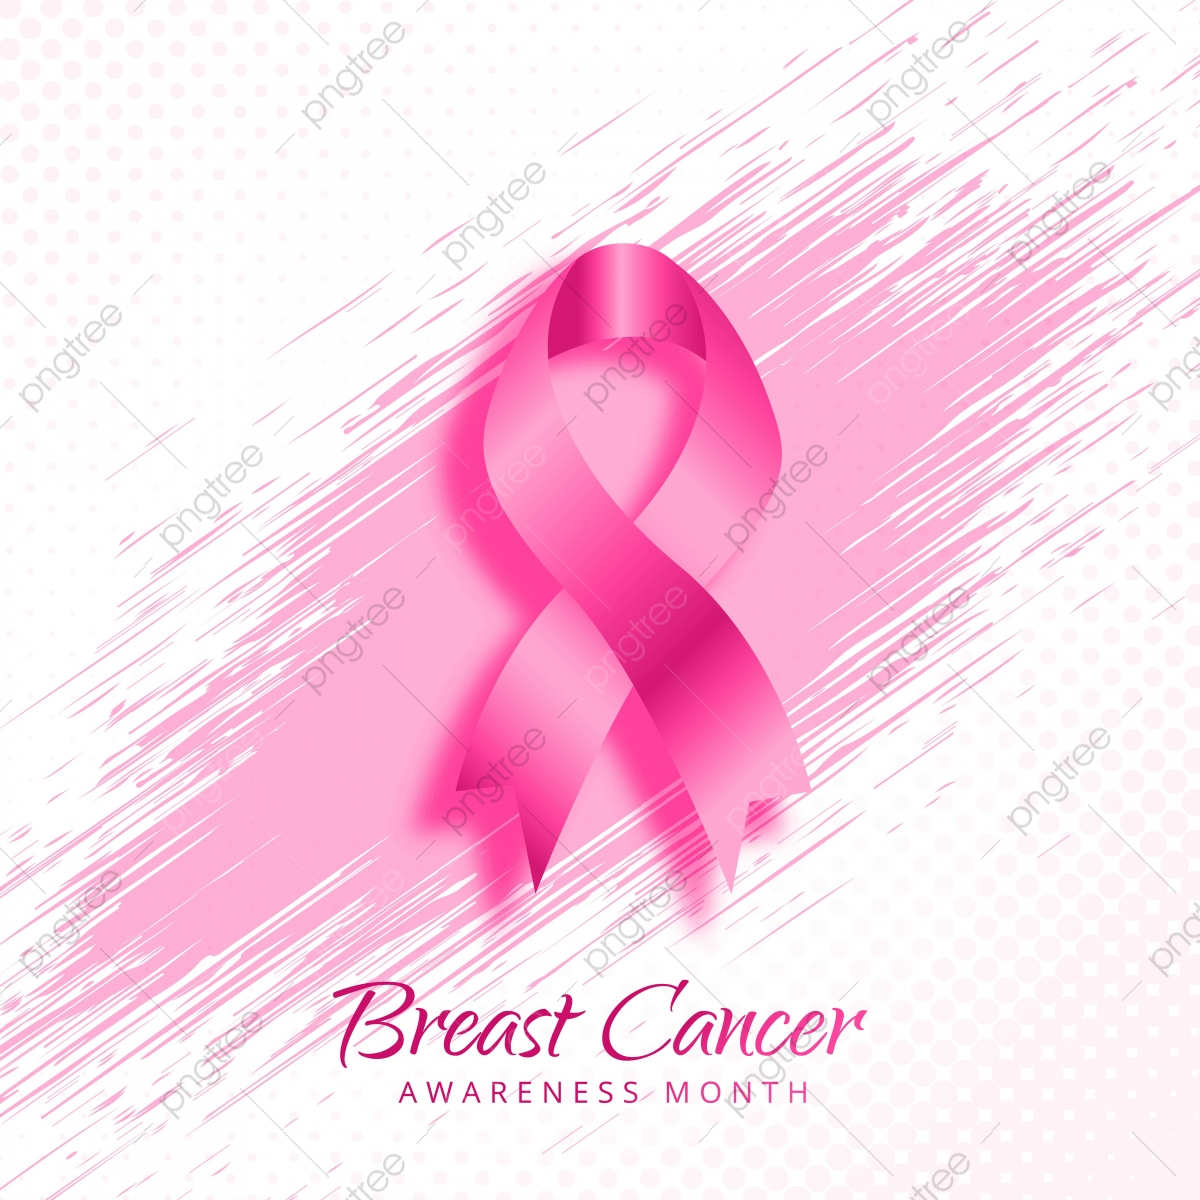 Cancer Background Photos Vectors And Psd Files For Free Download Pngtree